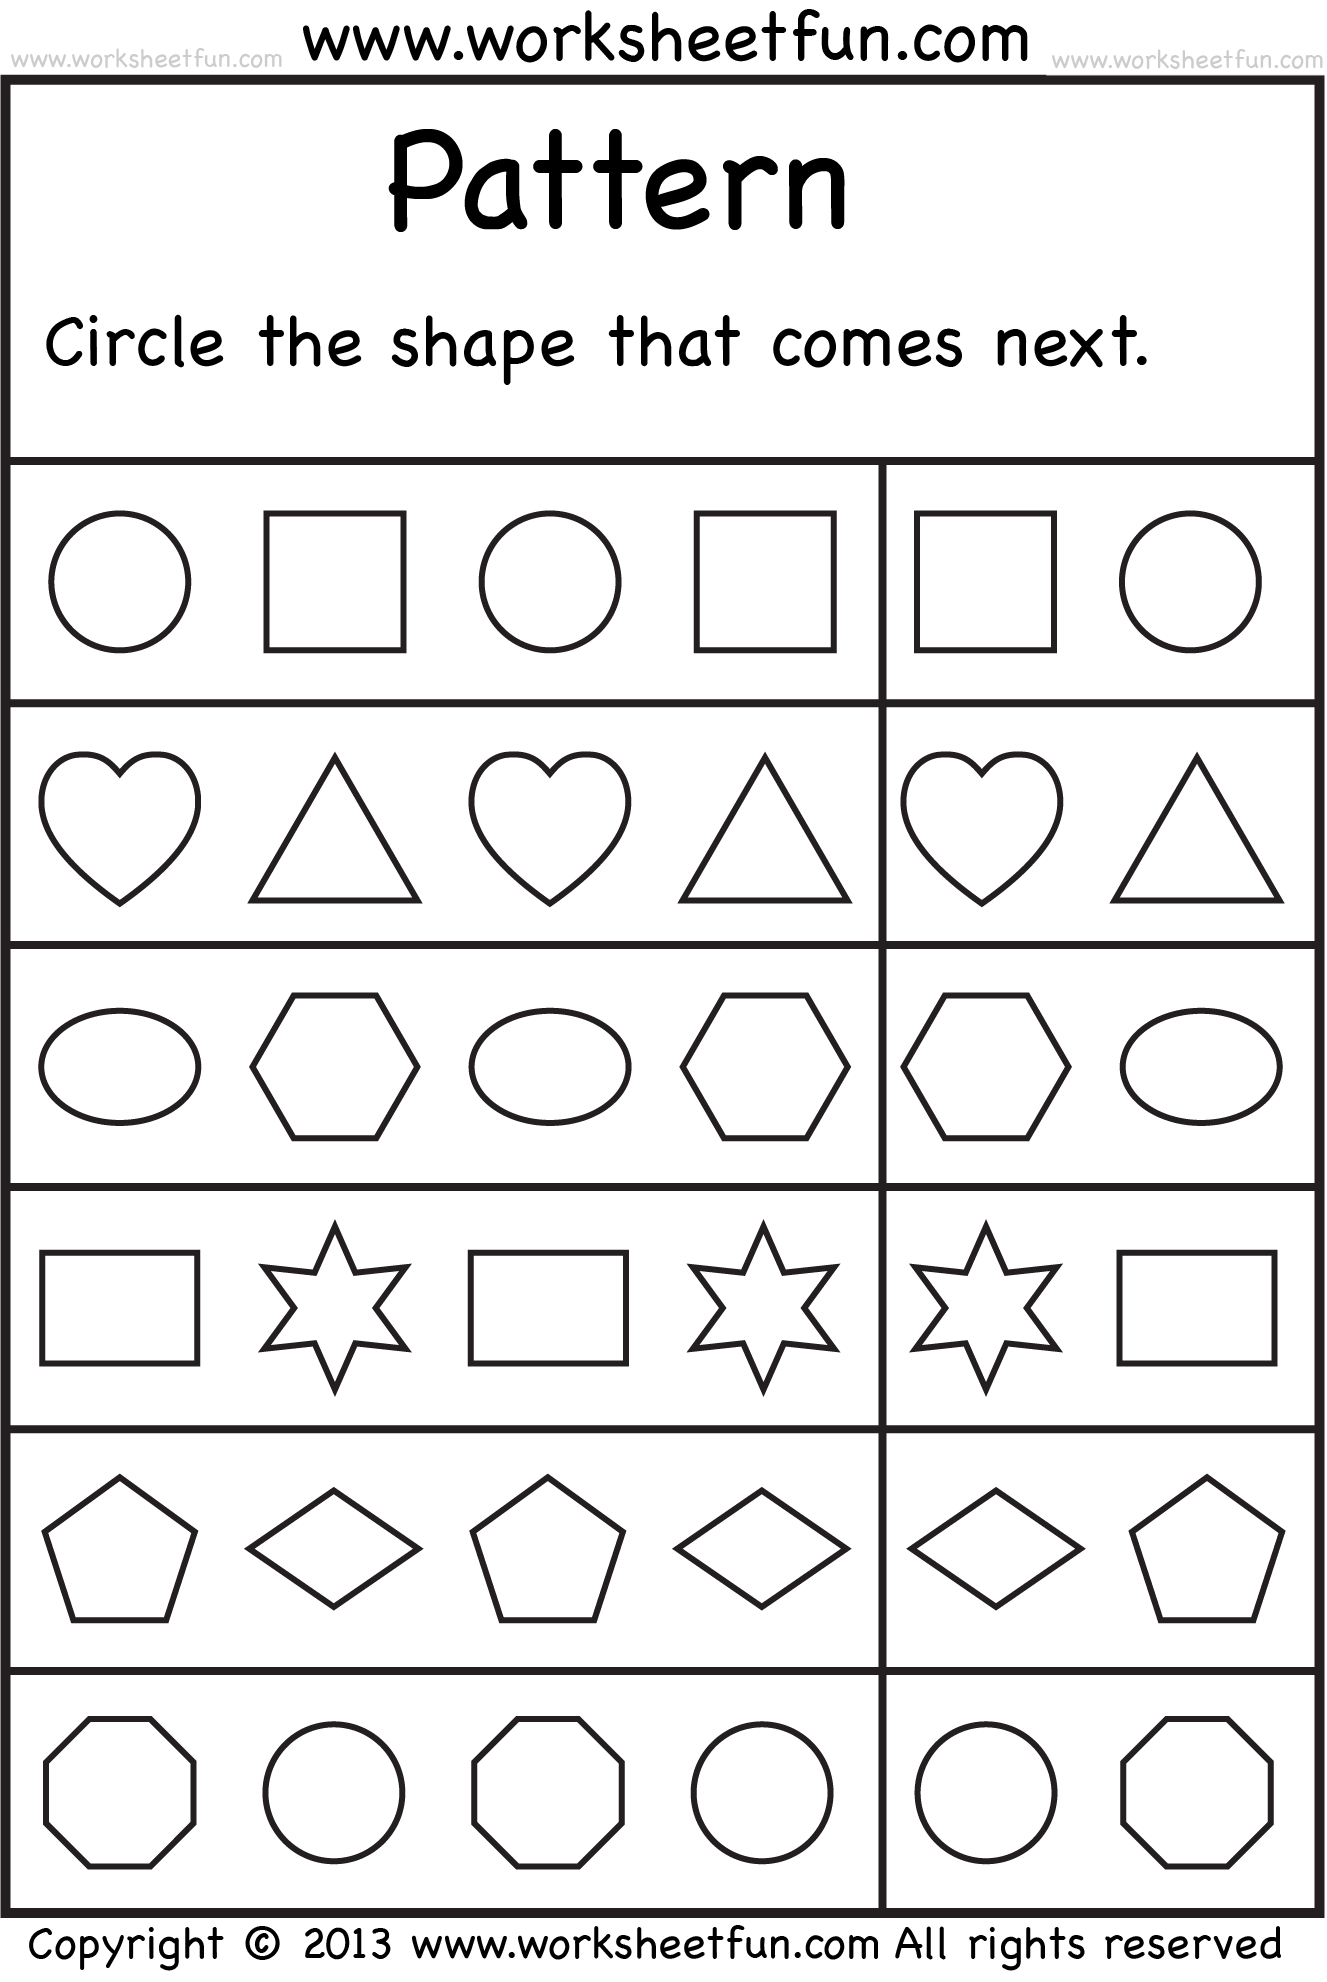 Weirdmailus  Wonderful  Images About School Worksheets On Pinterest  Number Words  With Likable  Images About School Worksheets On Pinterest  Number Words Alphabet Worksheets And Free Printable Kindergarten Worksheets With Appealing Have Fun Teaching Math Worksheets Also Sqr Worksheets In Addition English Is Fun Worksheets And Esl Elementary Worksheets As Well As Year  Algebra Worksheets Additionally Free Division Worksheets For Rd Grade From Pinterestcom With Weirdmailus  Likable  Images About School Worksheets On Pinterest  Number Words  With Appealing  Images About School Worksheets On Pinterest  Number Words Alphabet Worksheets And Free Printable Kindergarten Worksheets And Wonderful Have Fun Teaching Math Worksheets Also Sqr Worksheets In Addition English Is Fun Worksheets From Pinterestcom